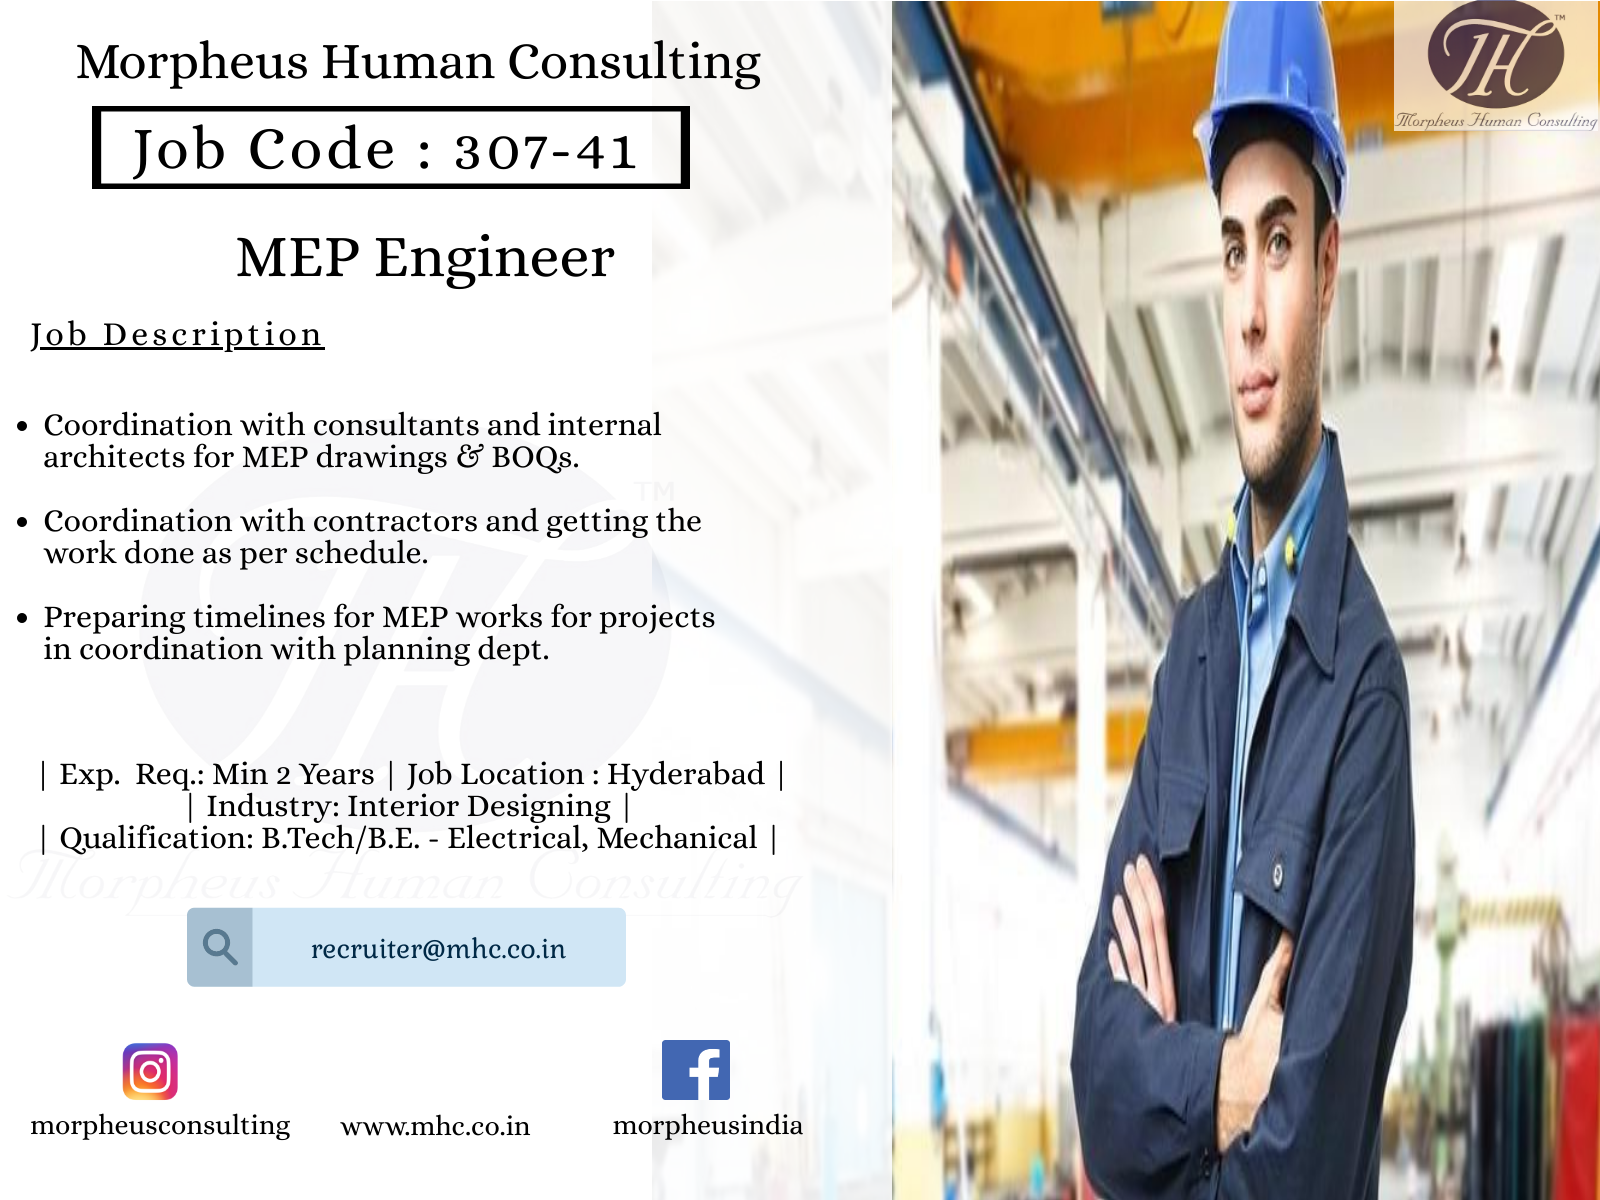 We Are Looking For A Mep Engineer In Hyderabad For A Leading Interior Designing Industry The Ideal Candidate Should Be A B Tech B E Job Opening Job Posting Engineering